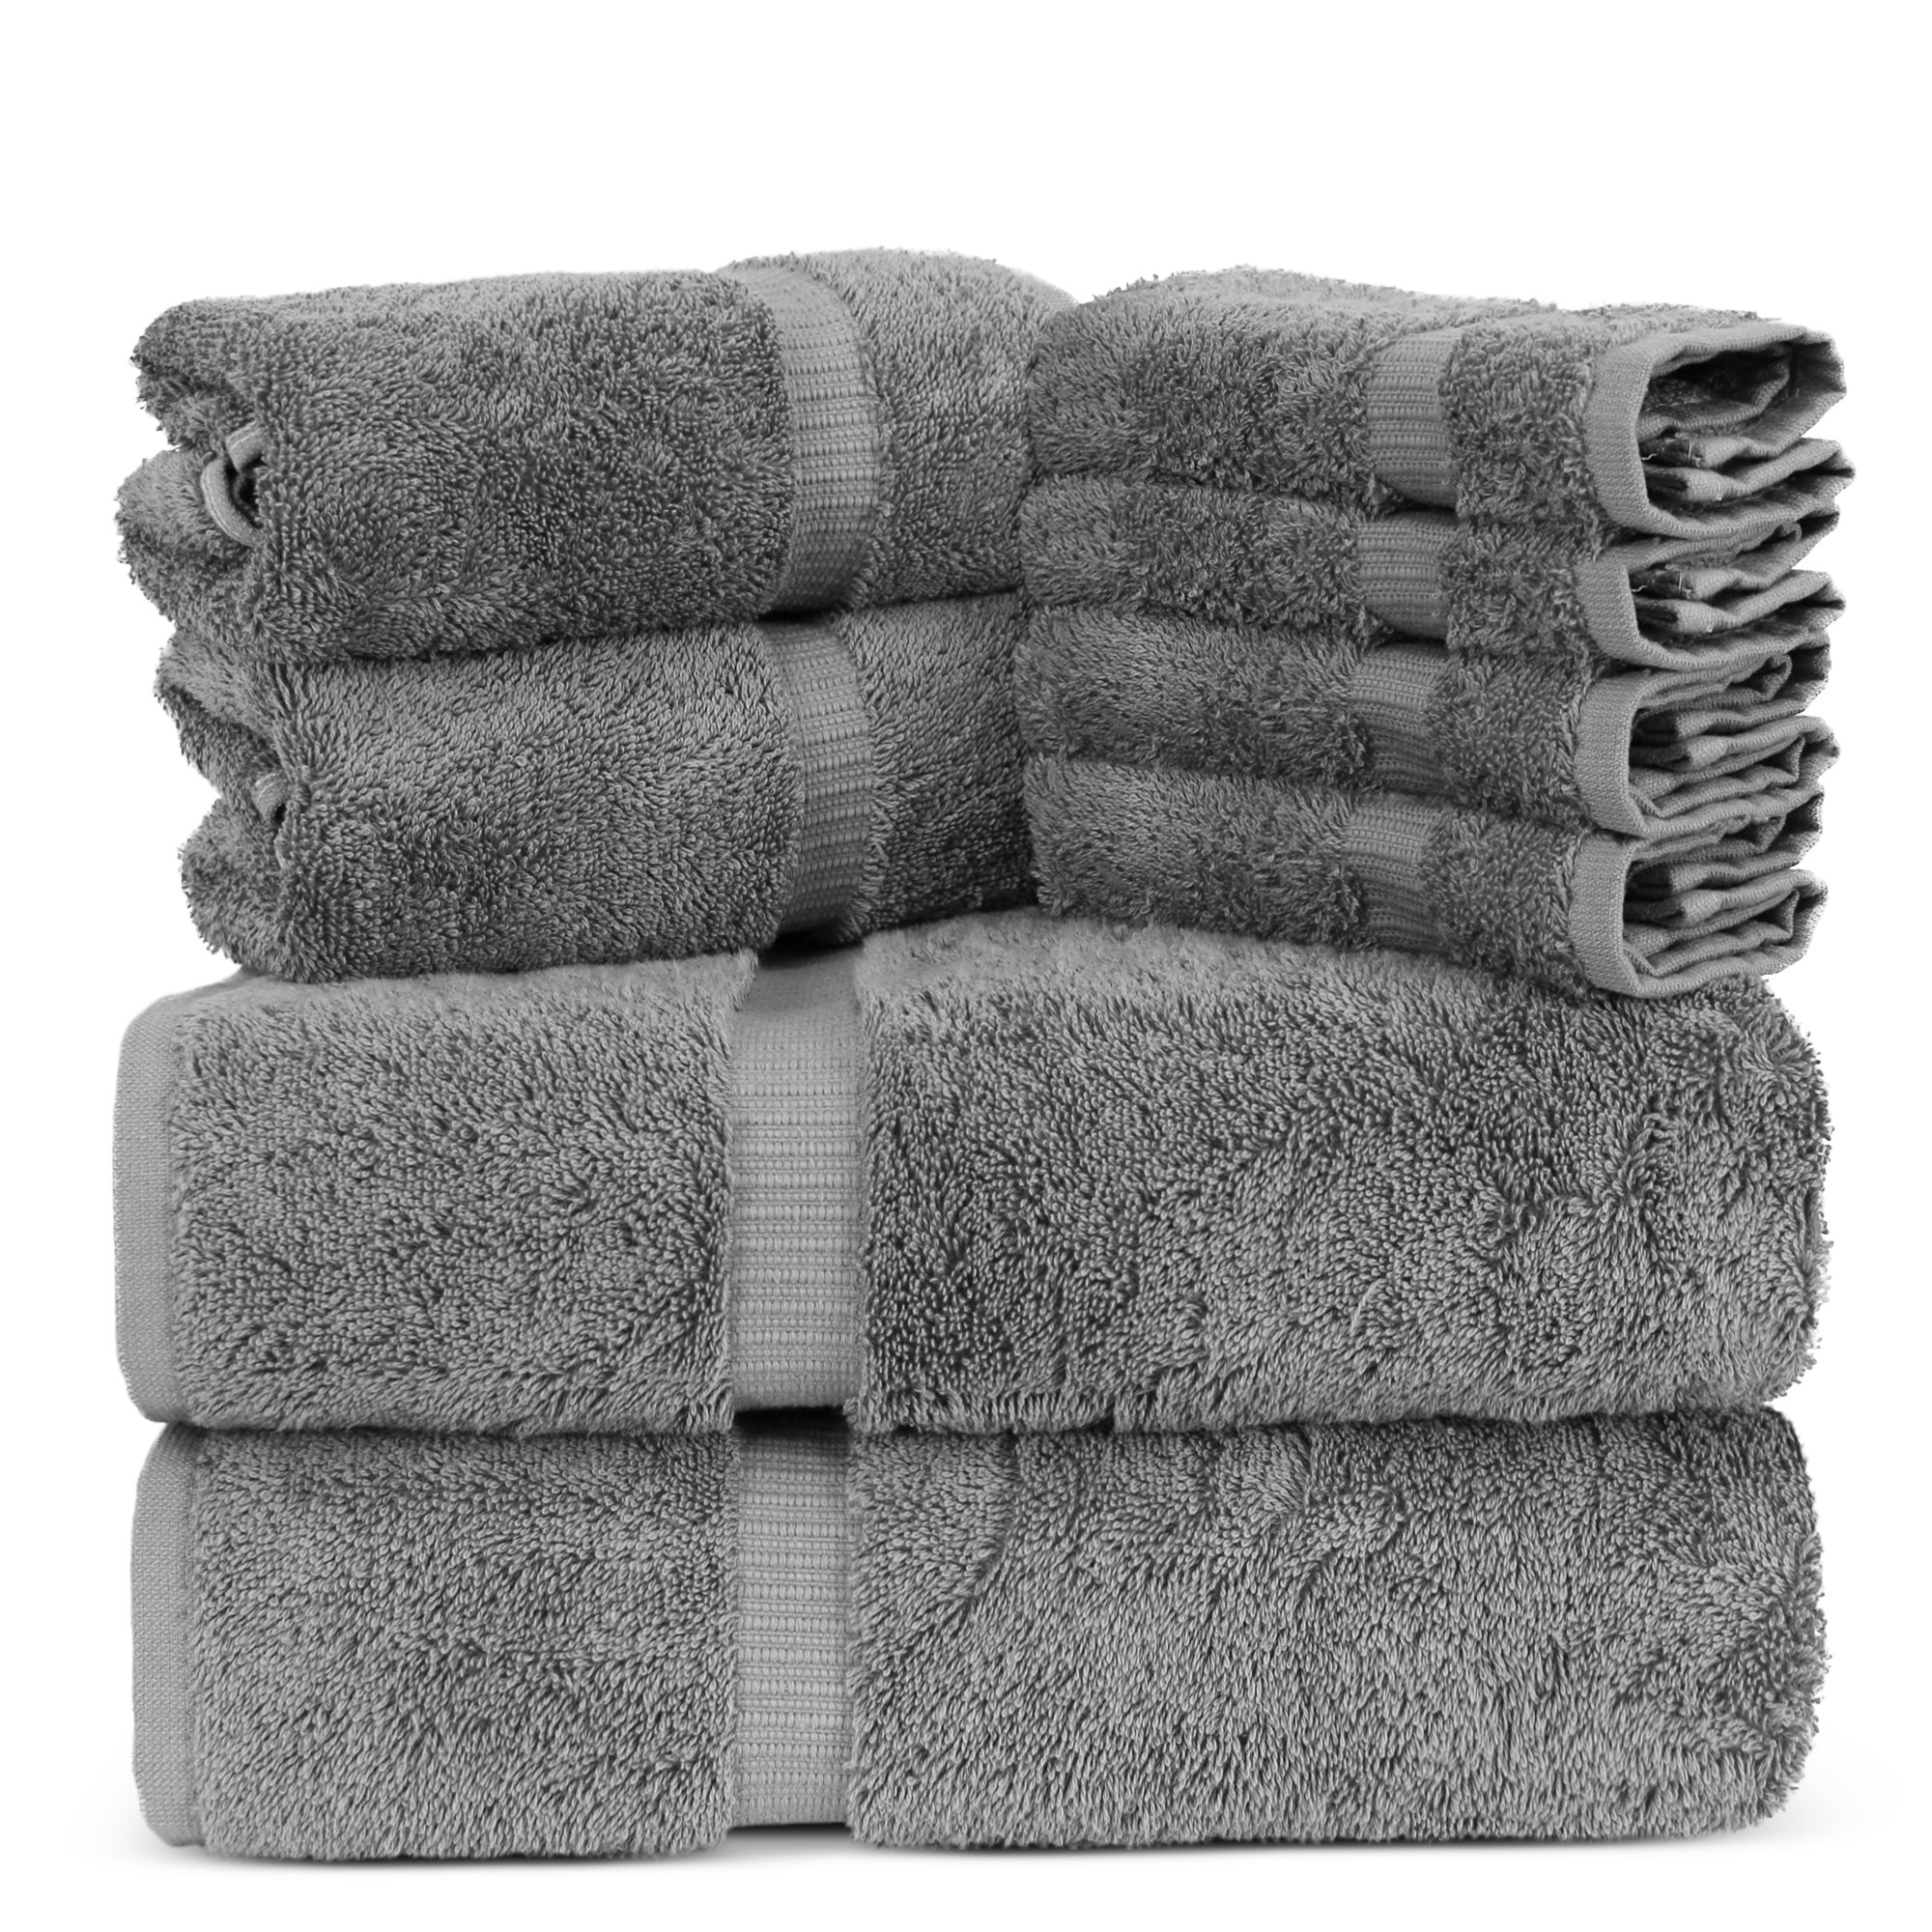 Towel Bazaar Luxury Hotel and Spa Quality Dobby Border 100% Turkish Cotton Eco-Friendly and Highly Absorbent Towel Set (Set of 8, Gray) by Towel Bazaar